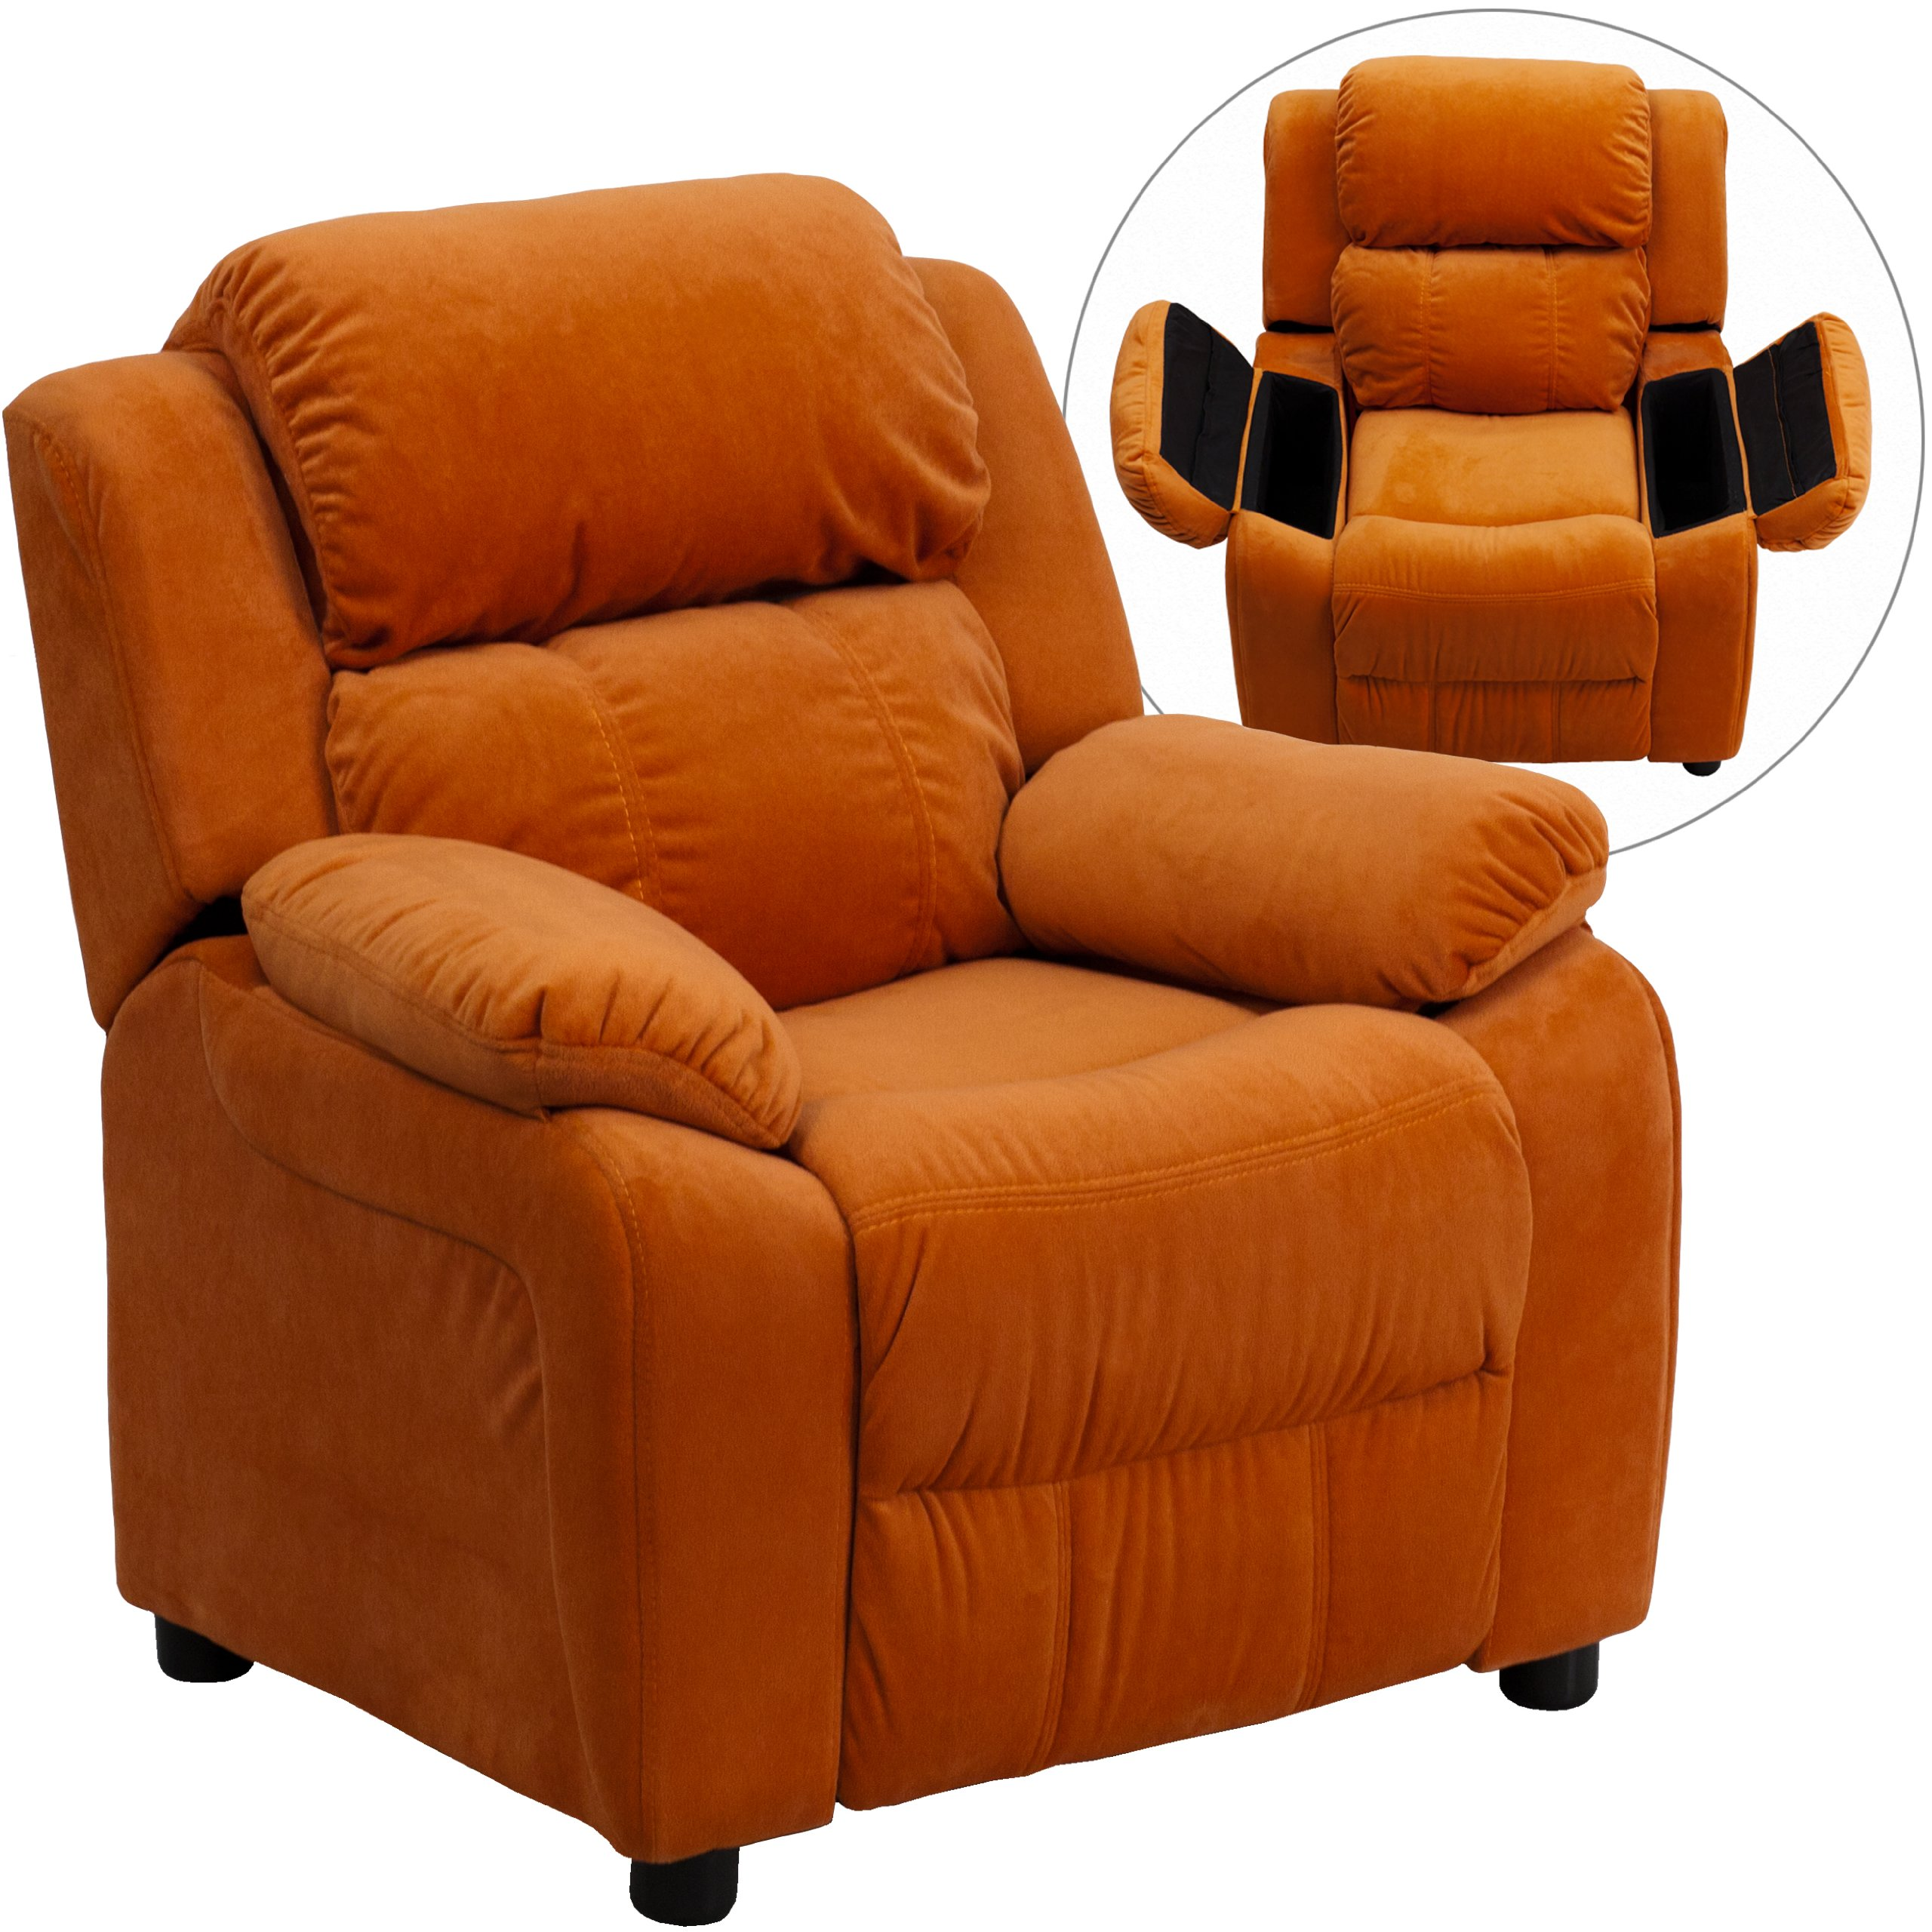 Winston Direct Kids' Series Deluxe Padded Contemporary Orange Microfiber Recliner with Storage Arms